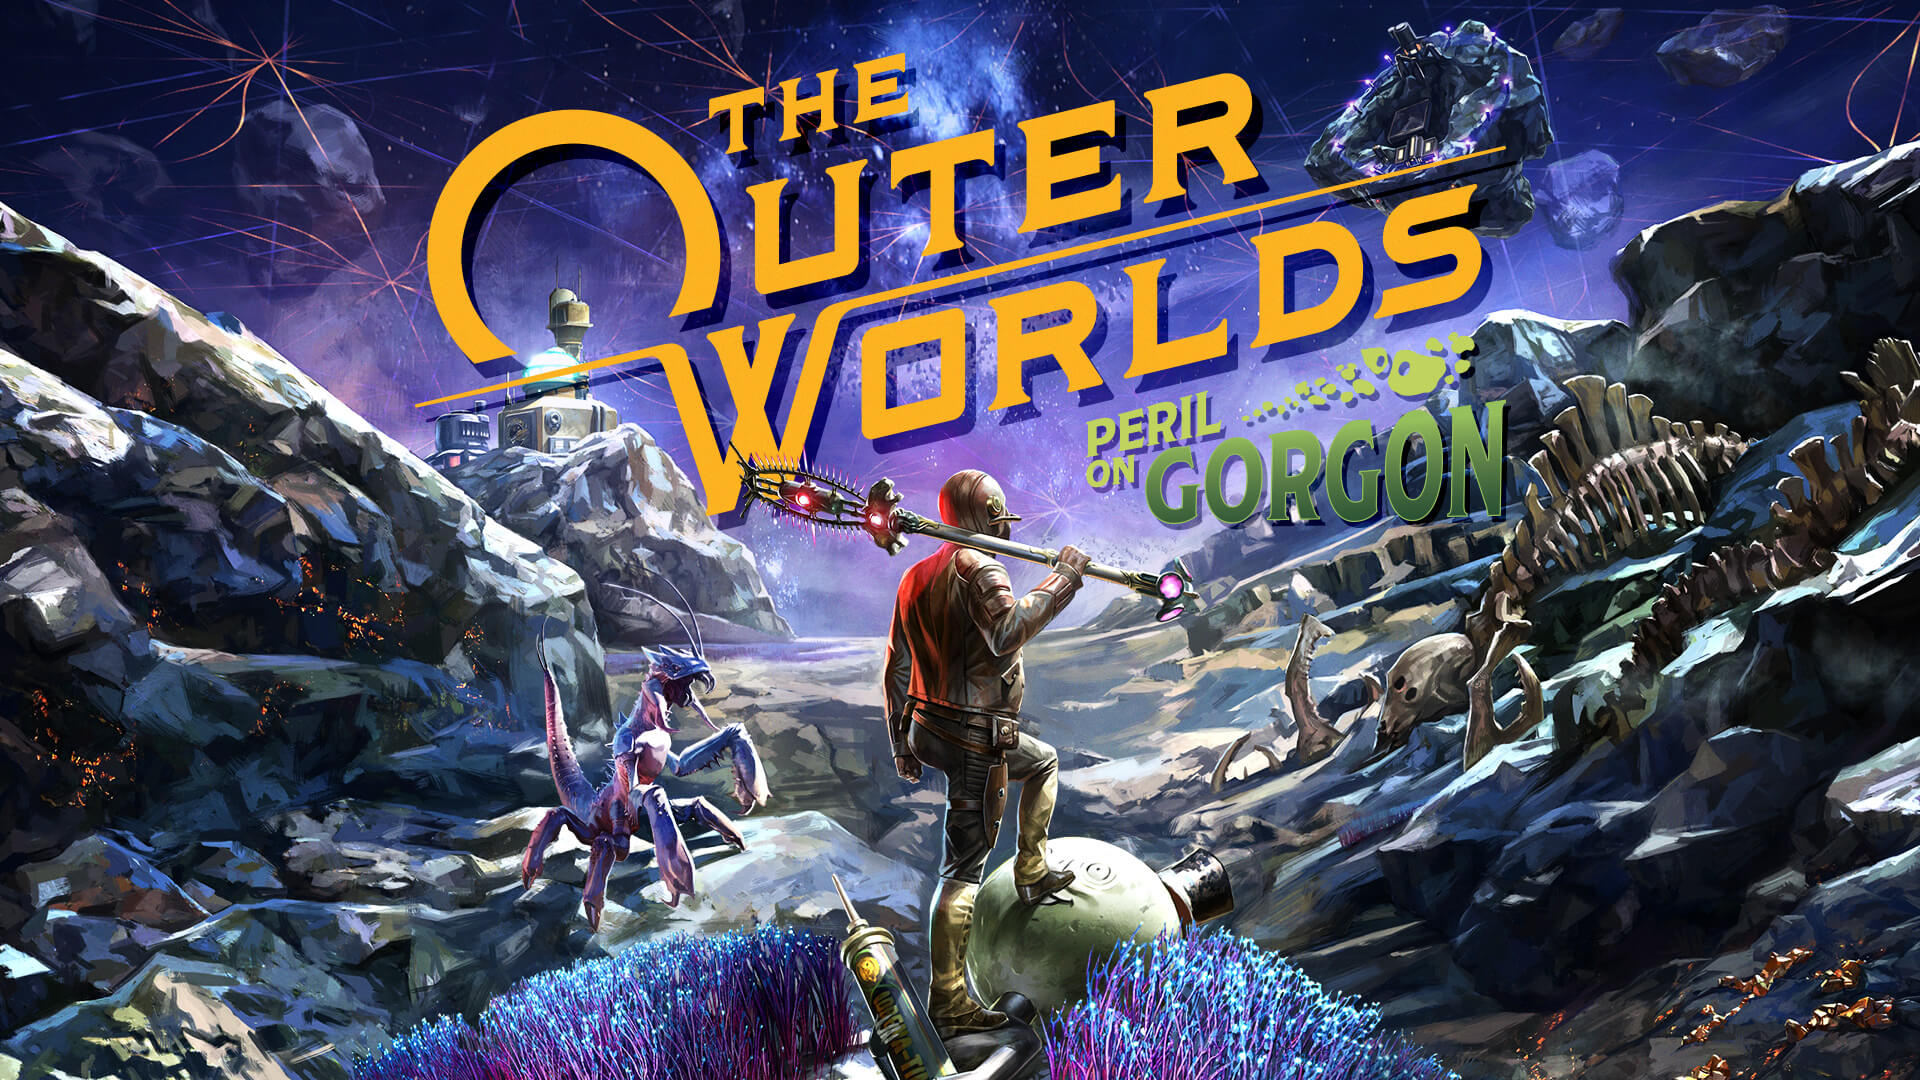 The Outer Worlds Peril on Gorgon (DLC) полная версия